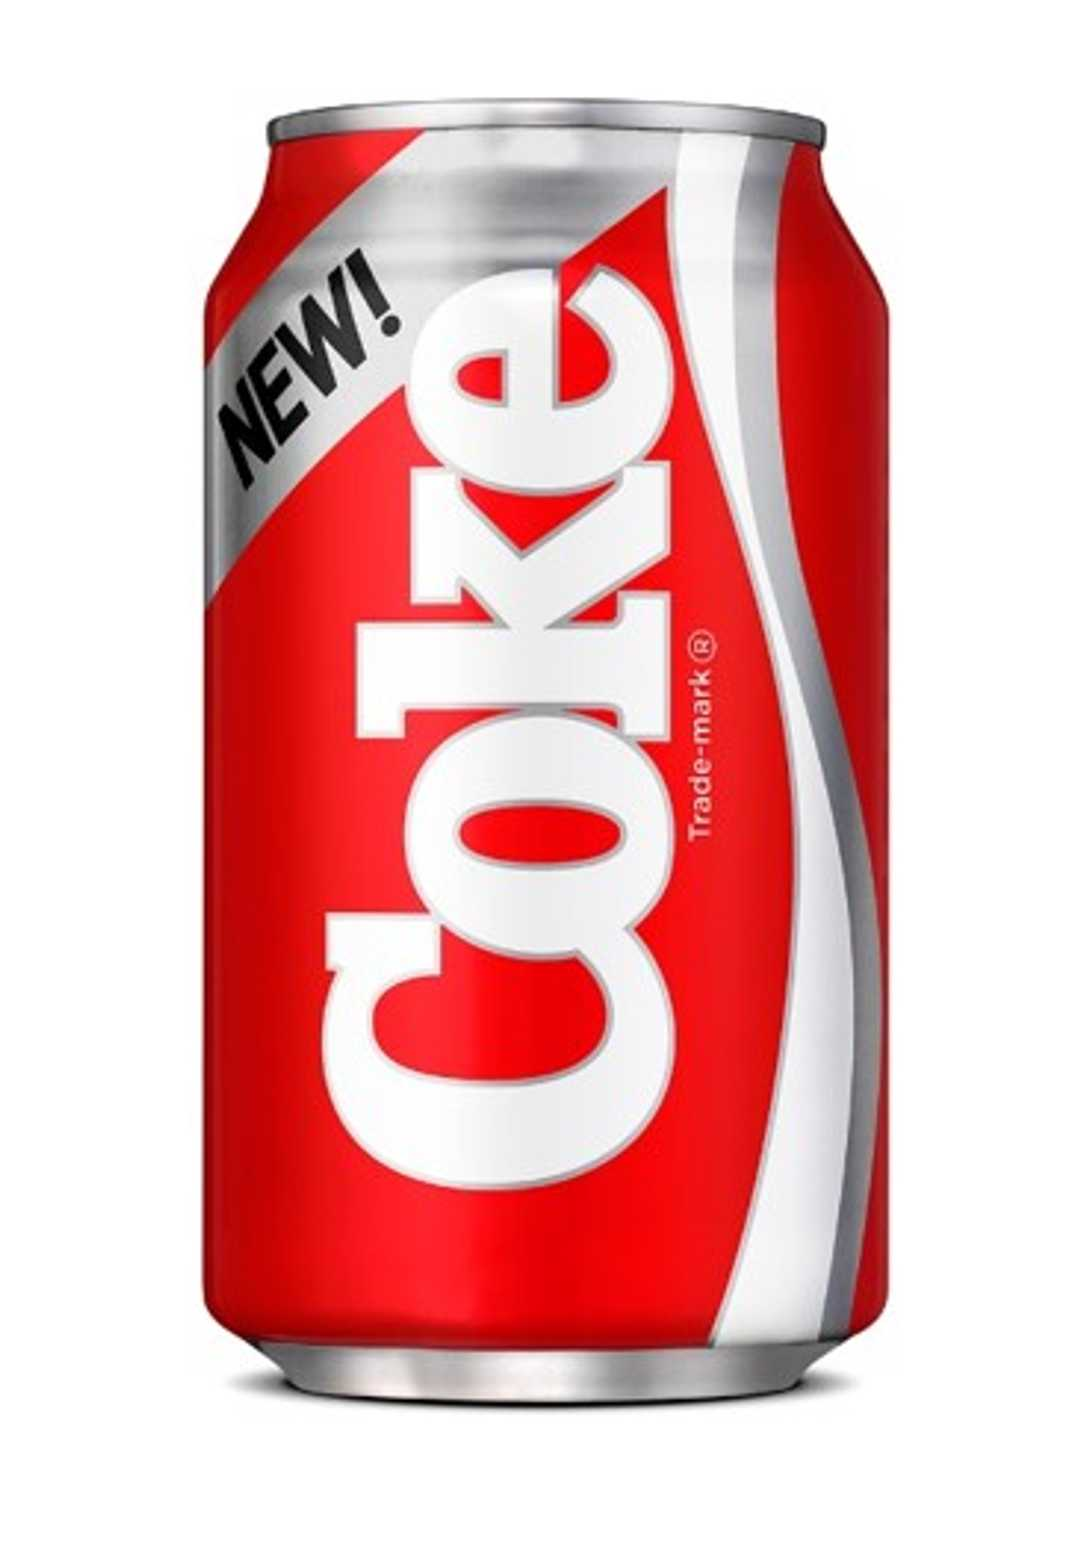 New Coke is back after 34 years. Thank 'Stranger Things.'